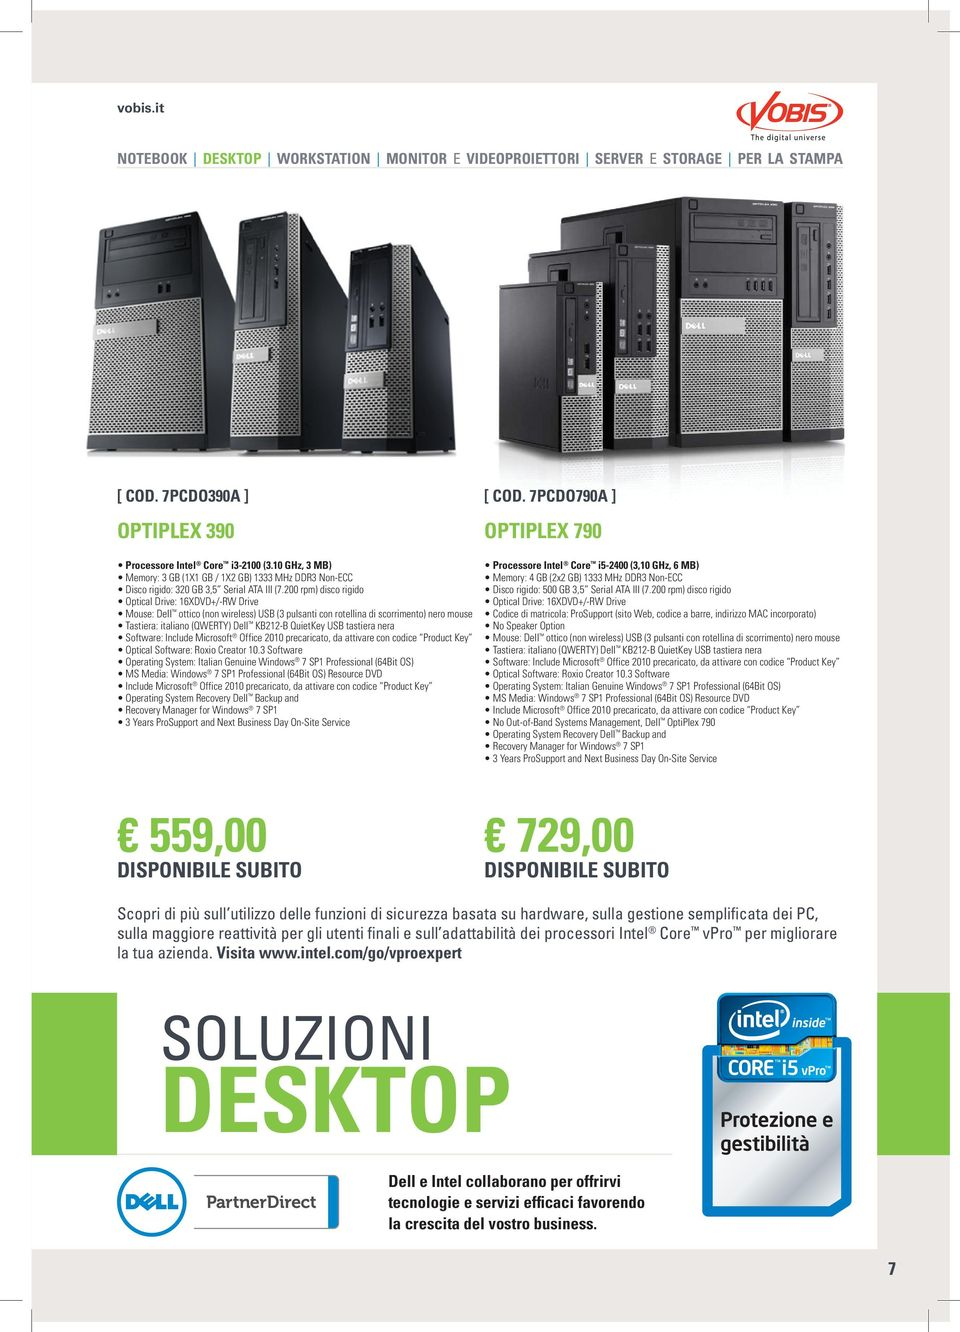 200 rpm) disco rigido Optical Drive: 16XDVD+/-RW Drive Mouse: Dell ottico (non wireless) USB (3 pulsanti con rotellina di scorrimento) nero mouse Tastiera: italiano (QWERTY) Dell KB212-B QuietKey USB